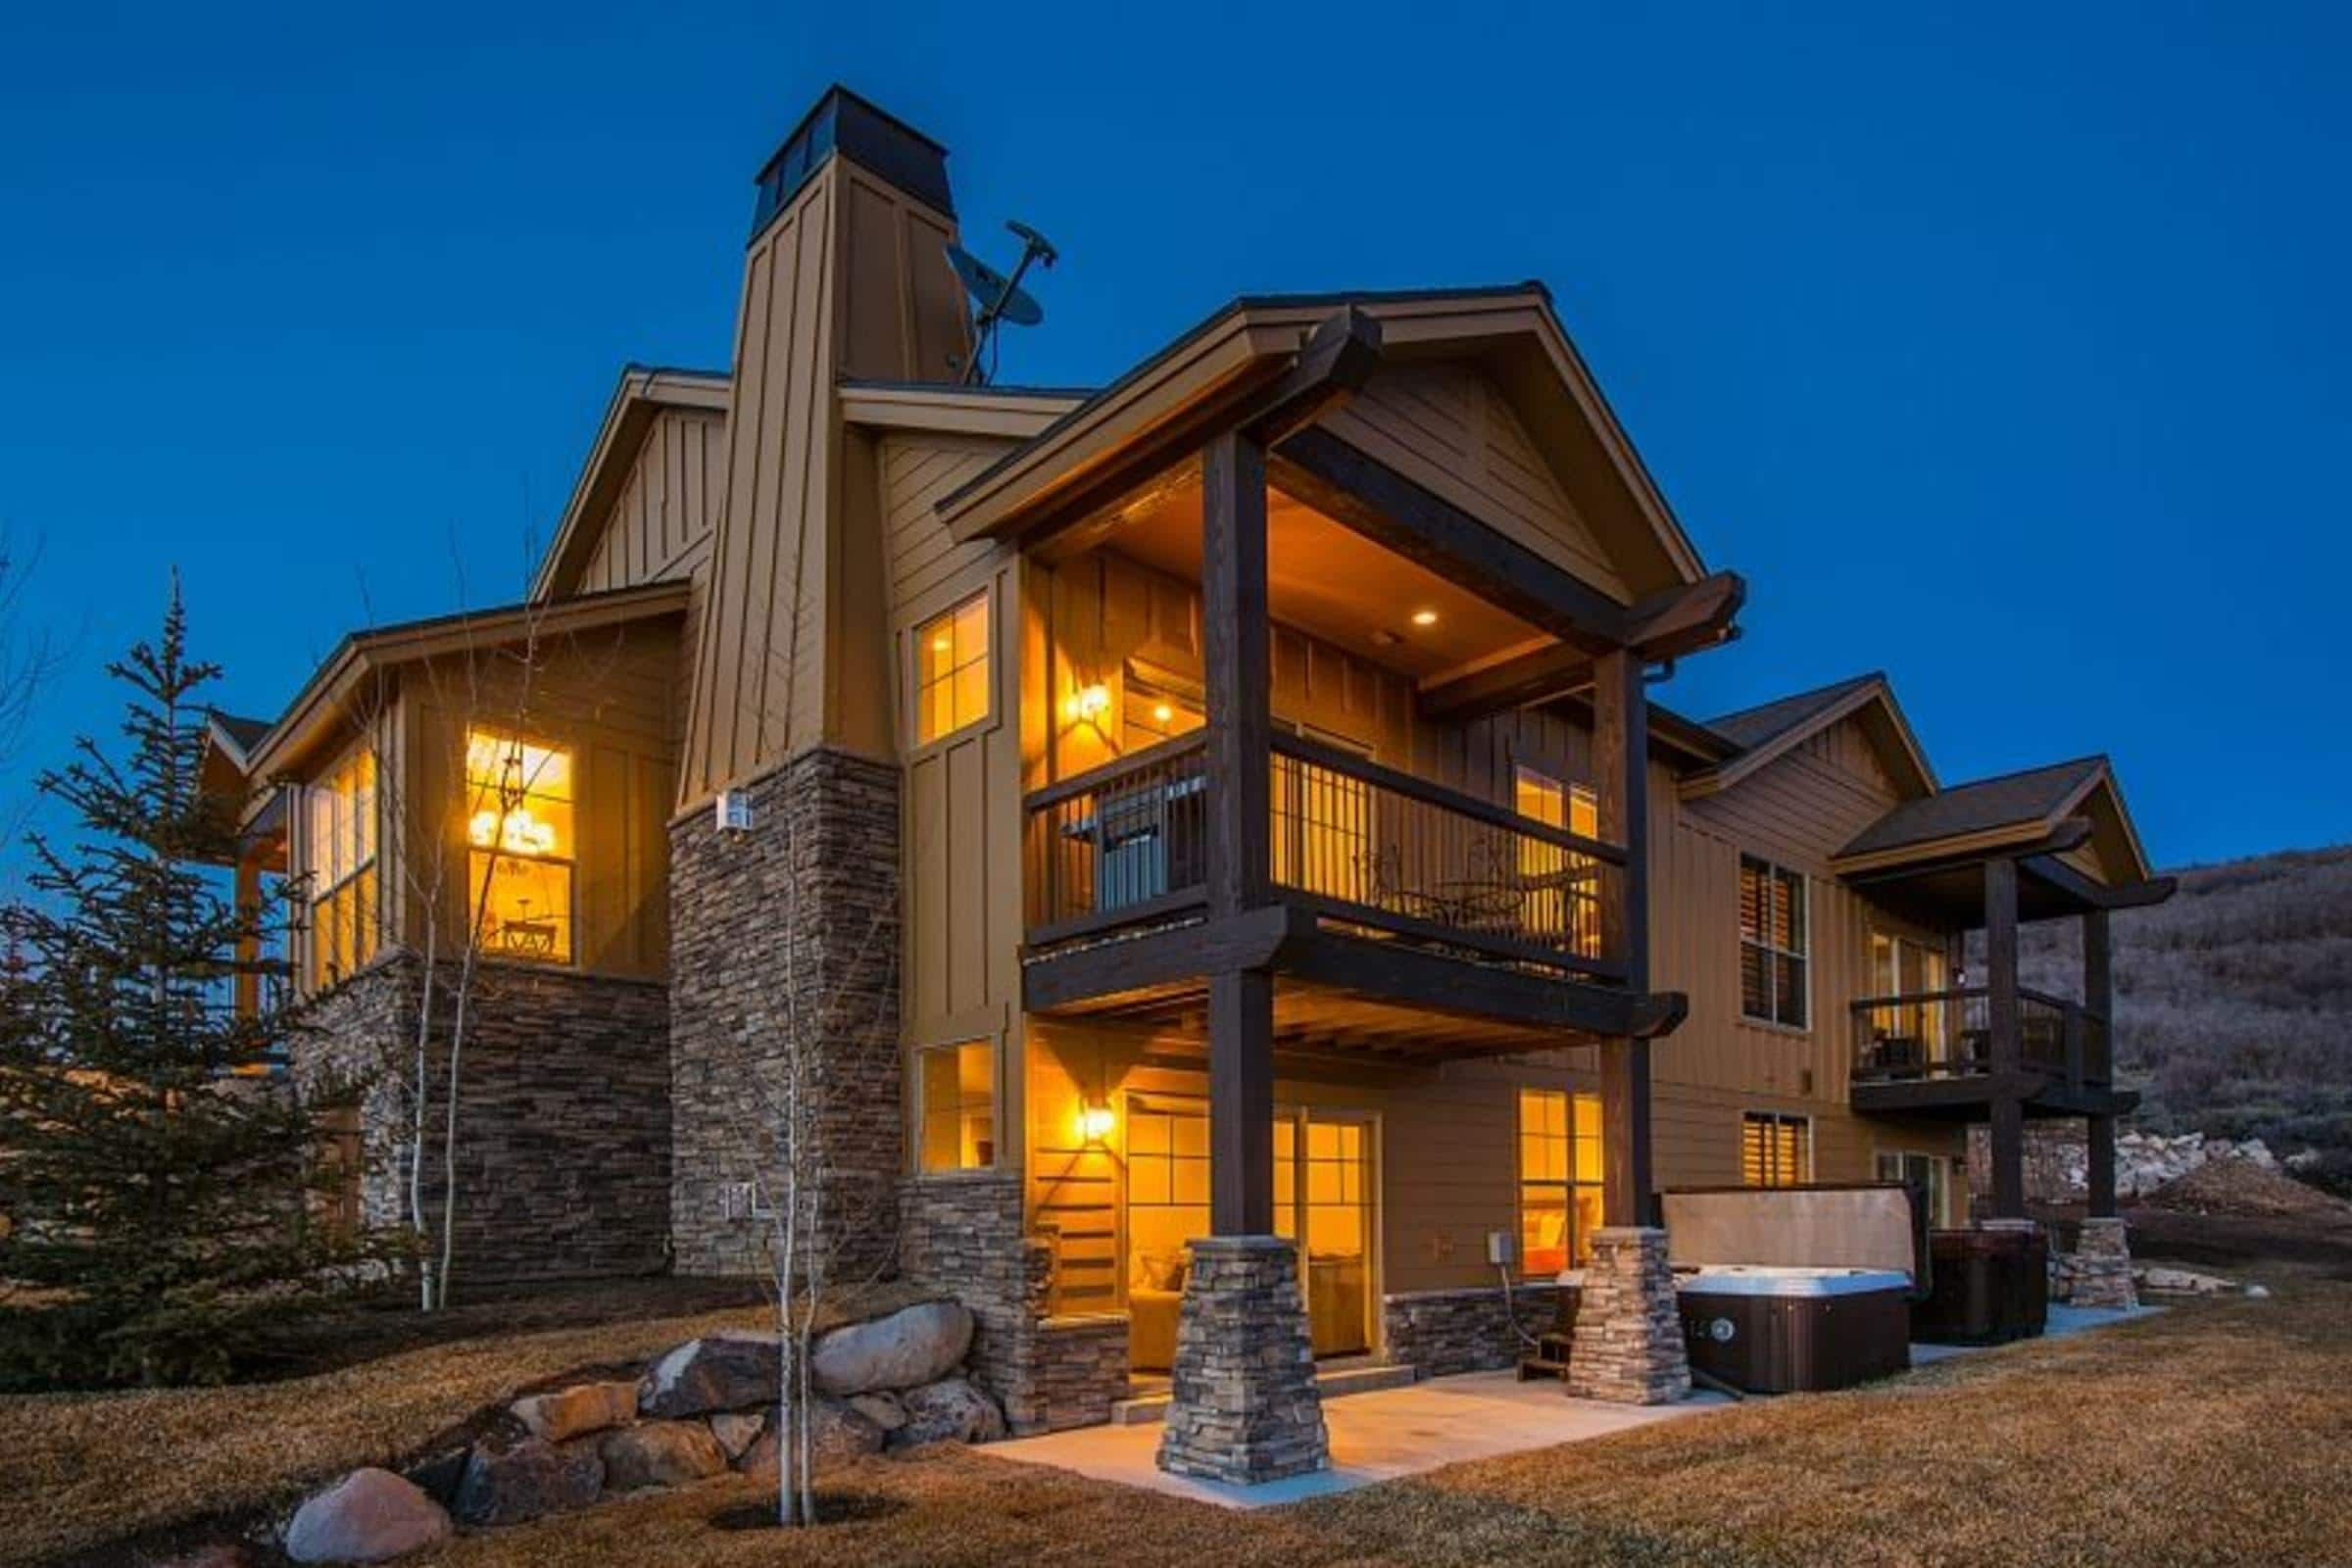 Property Image 1 - Beautiful Mountain Escape Close to Main Street, w/ Hot Tub, Media Room, & Views!